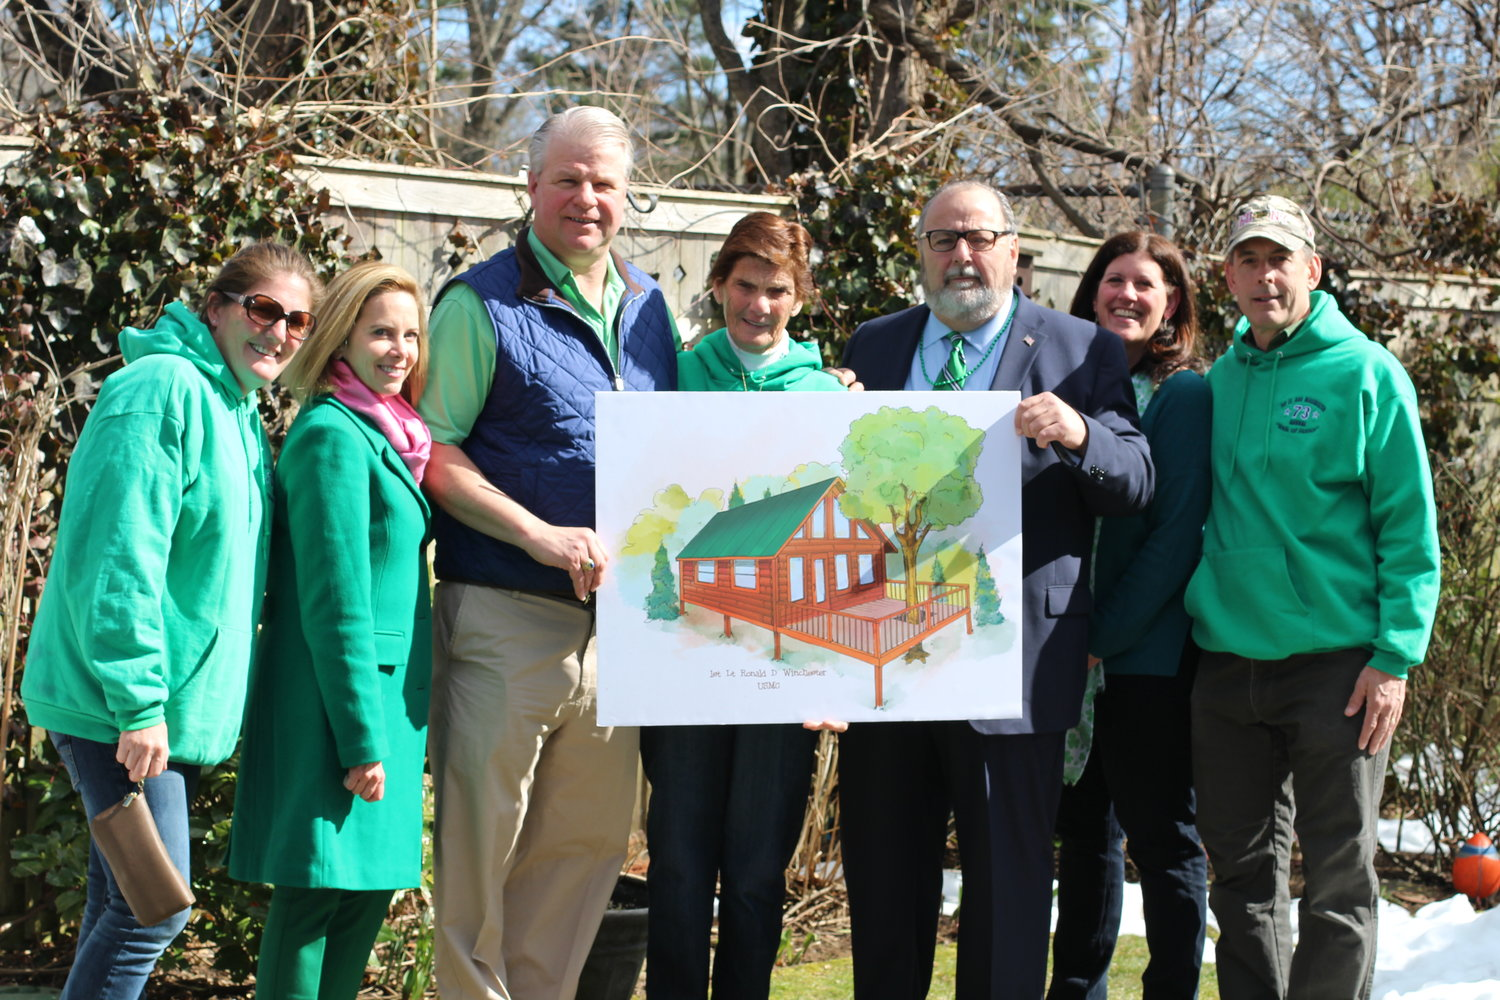 Kristine Winchester, far left, joined Town of Hempstead Supervisor Laura Gillen, Brian Rathjen, Marianna Winchester, Mayor Francis X. Murray, Deputy Mayor Kathleen Baxley and Michael Quilty at last year's St. Patrick's Parade. Winchester was presented with the rendering of a treehouse to be dedicated to her late son, Ronald, a Marine killed in Iraq in 2004.